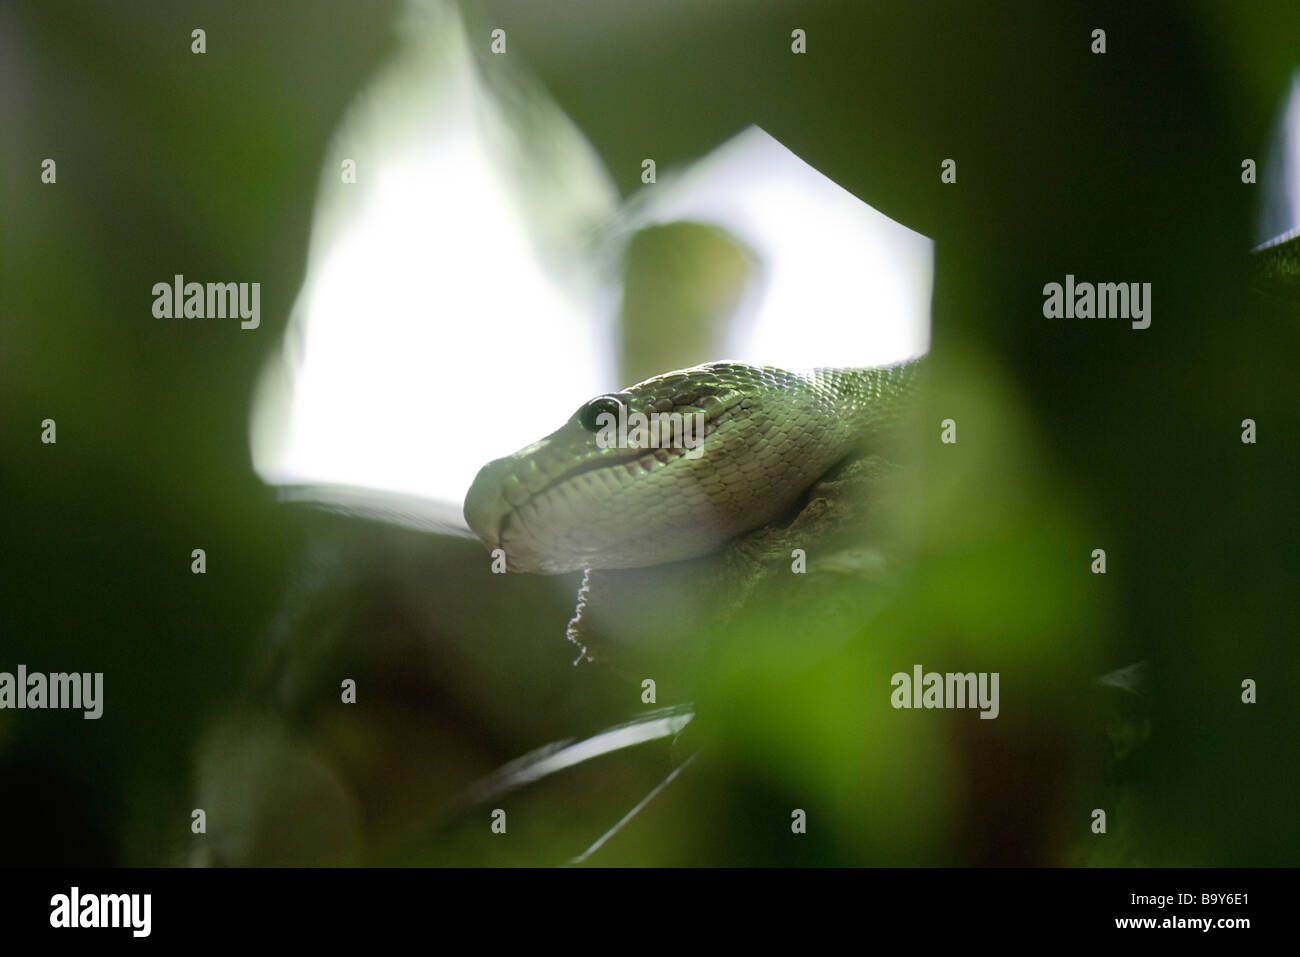 Head of snake hidden in foliage - Stock Image